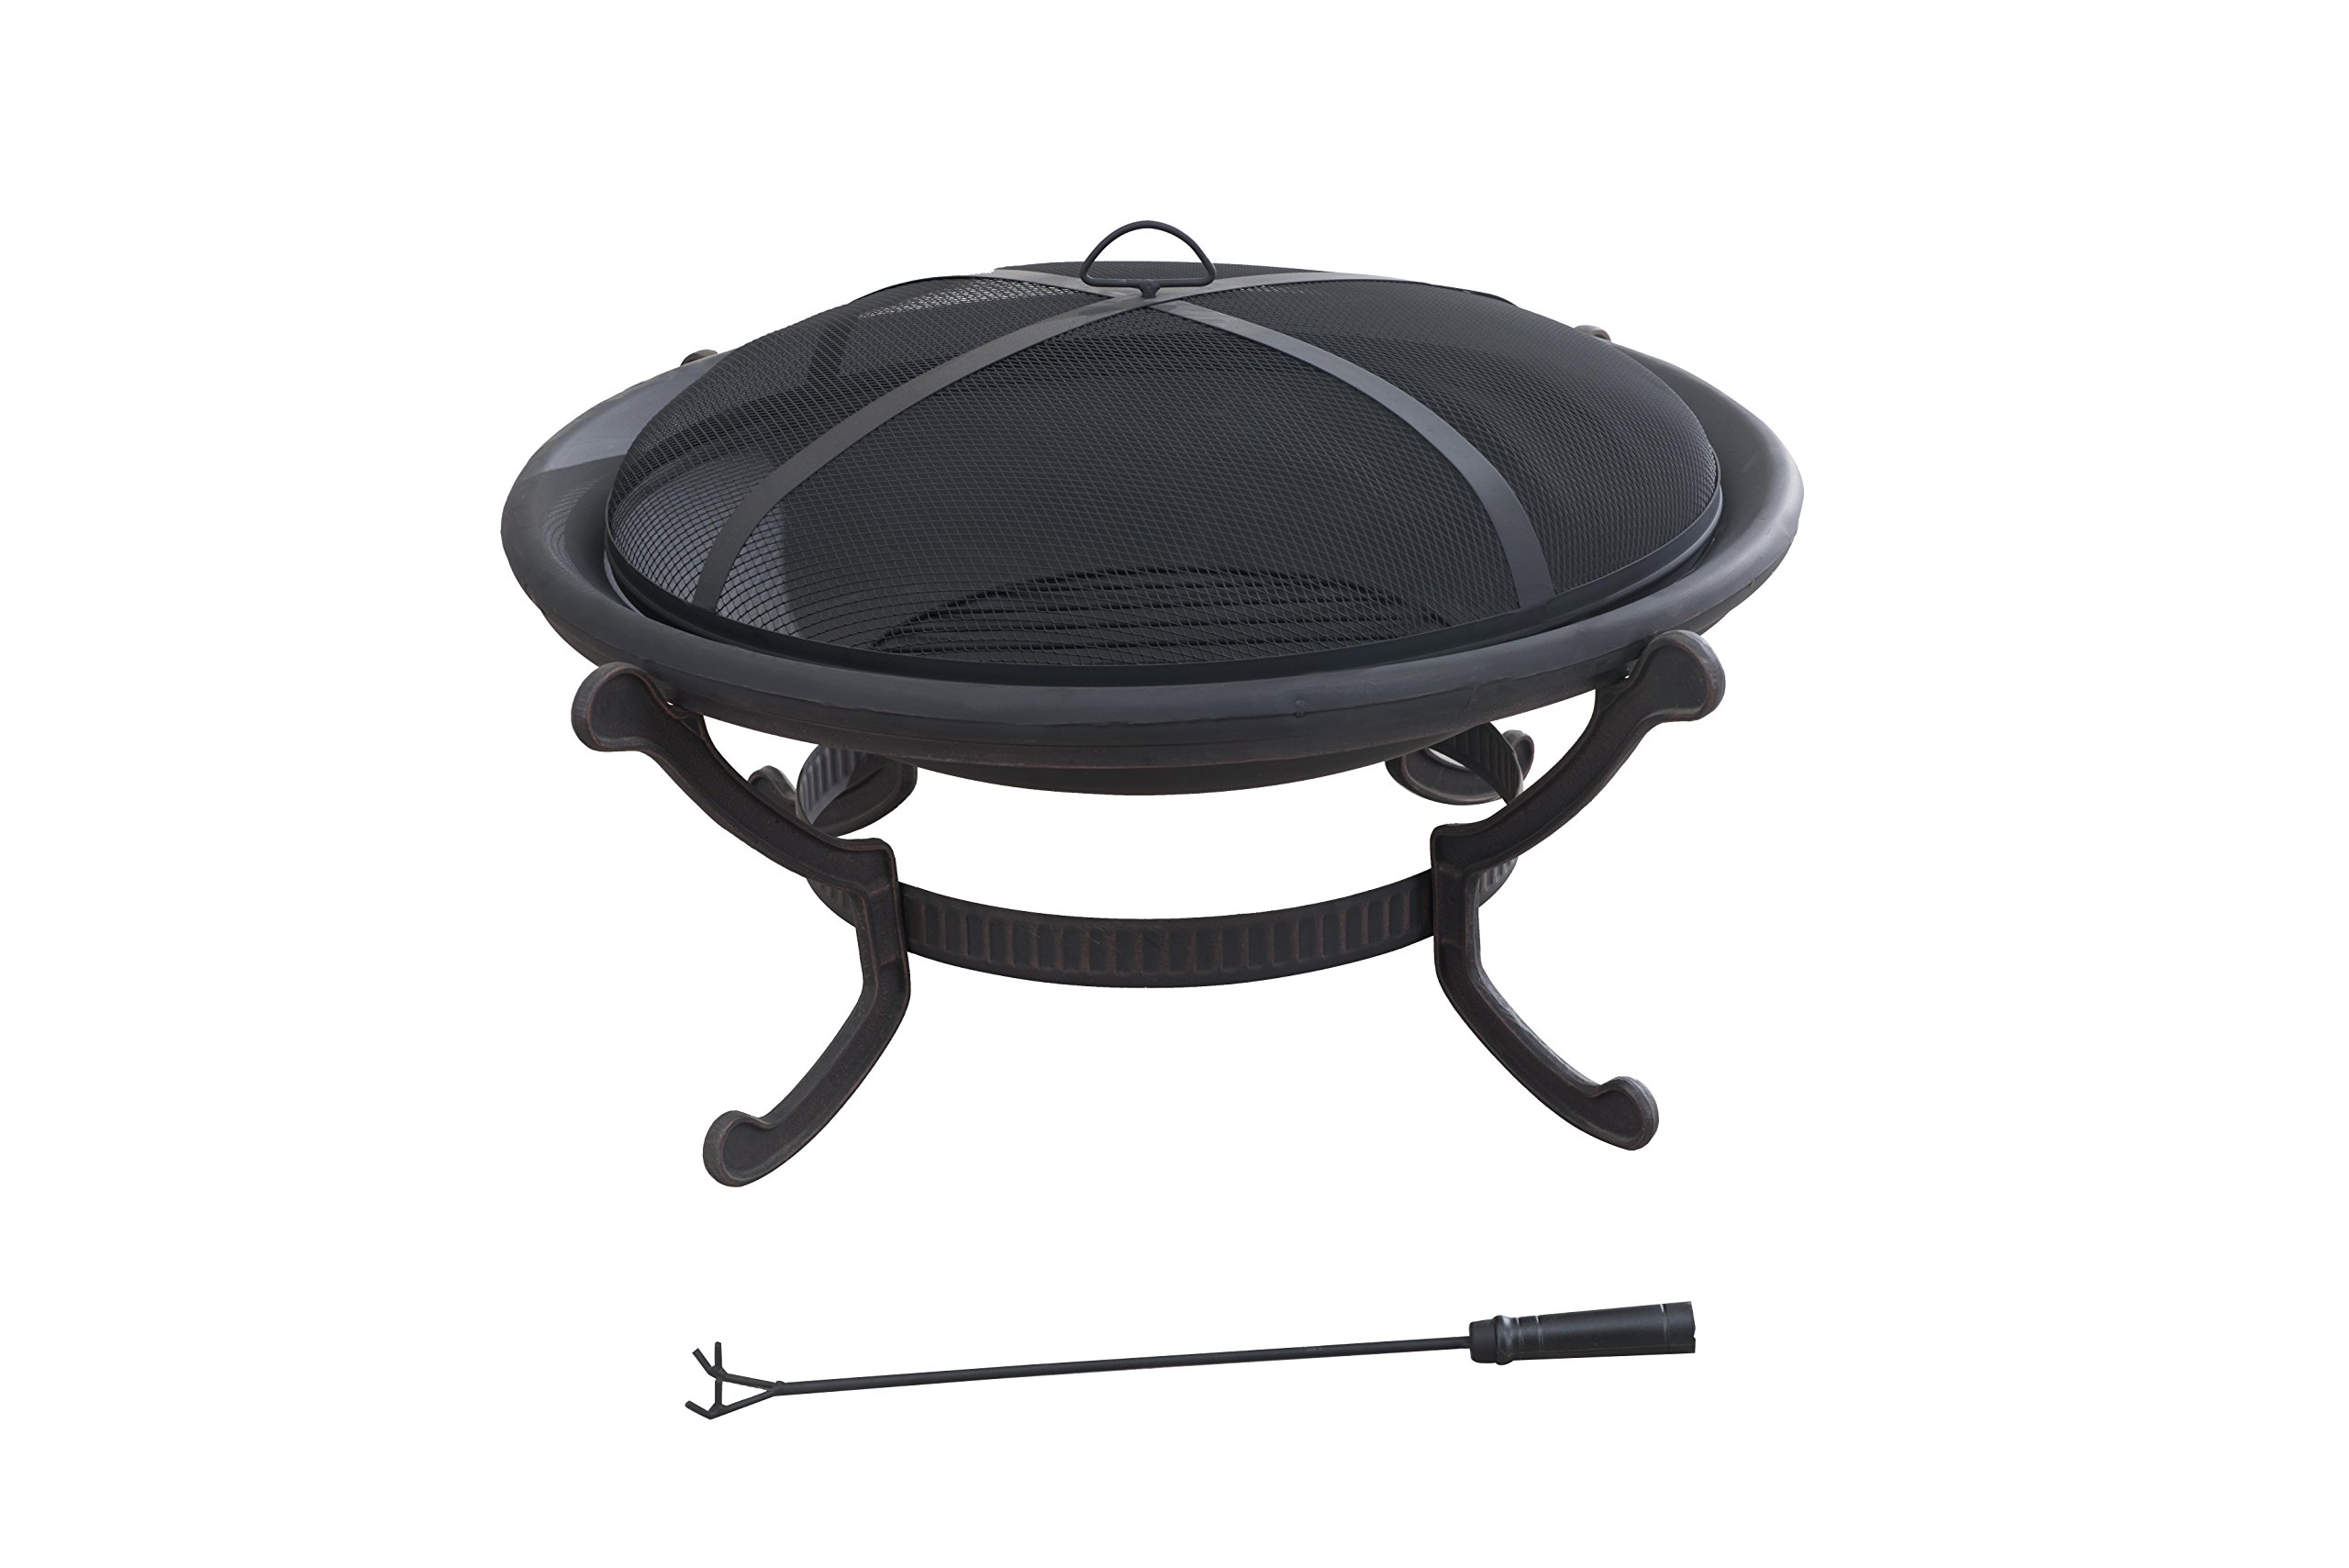 Sunjoy 35'' Nexcom Wood Burning Iron Round Fire Pit - Mesh spark guard cover for added safety to prevent embers from escaping Steel frame with powder-coated finish Contemporary design - patio, outdoor-decor, fire-pits-outdoor-fireplaces - 71 TKItveGL -